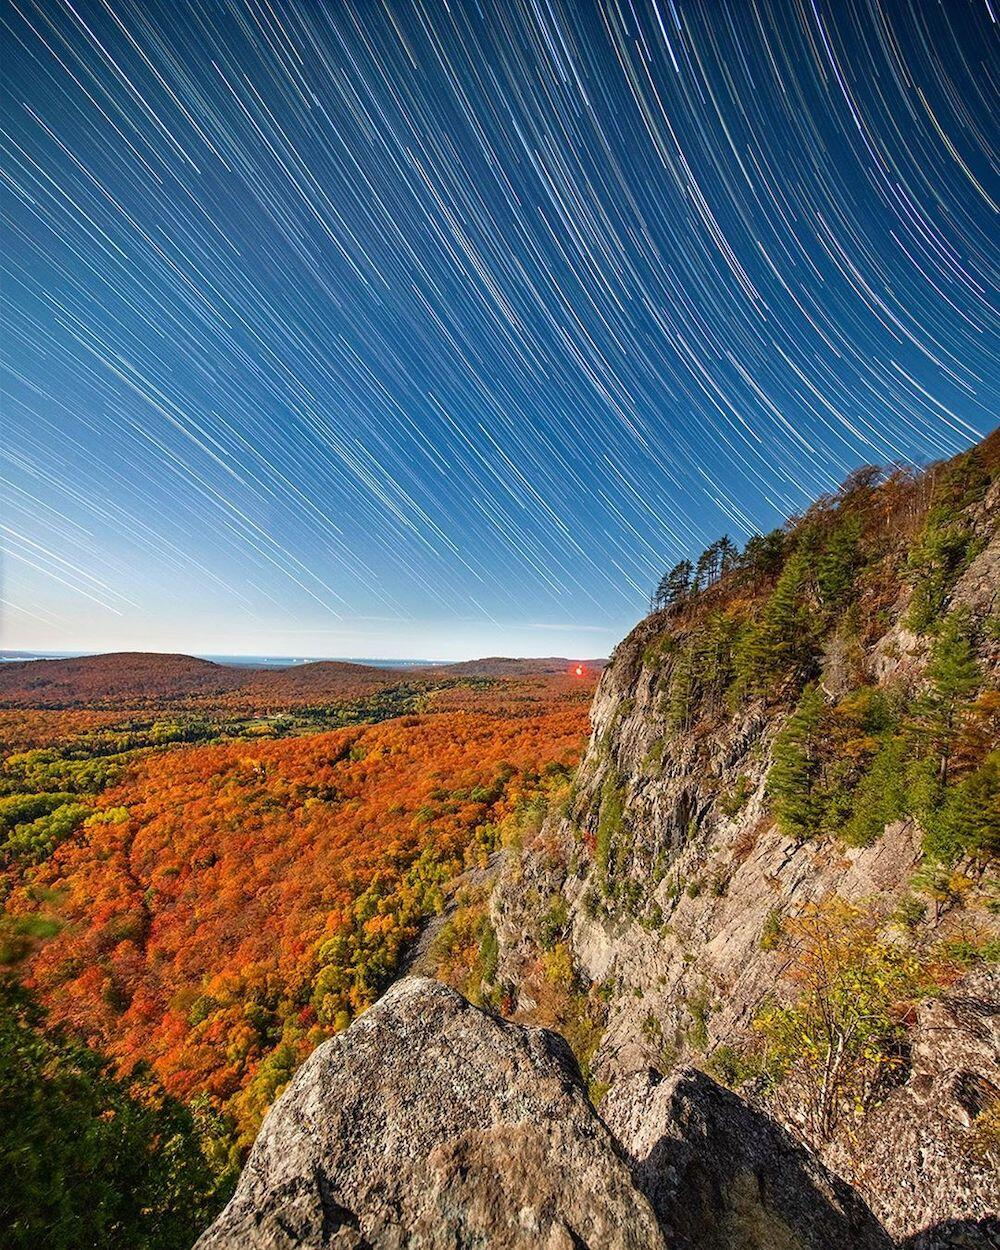 Cliff overlooking colourful trees with stars in sky